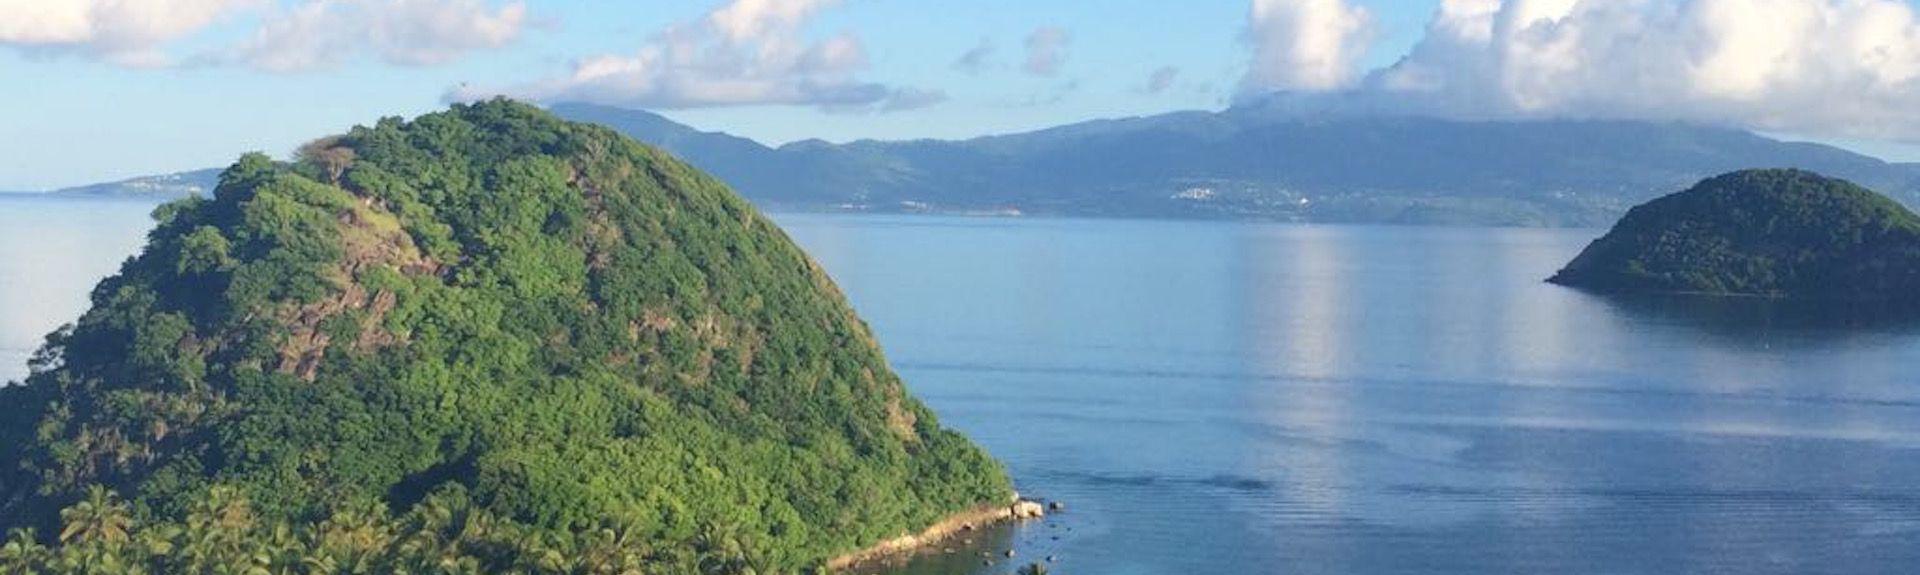 Vieux-Fort, Basse-Terre Island, Guadeloupe